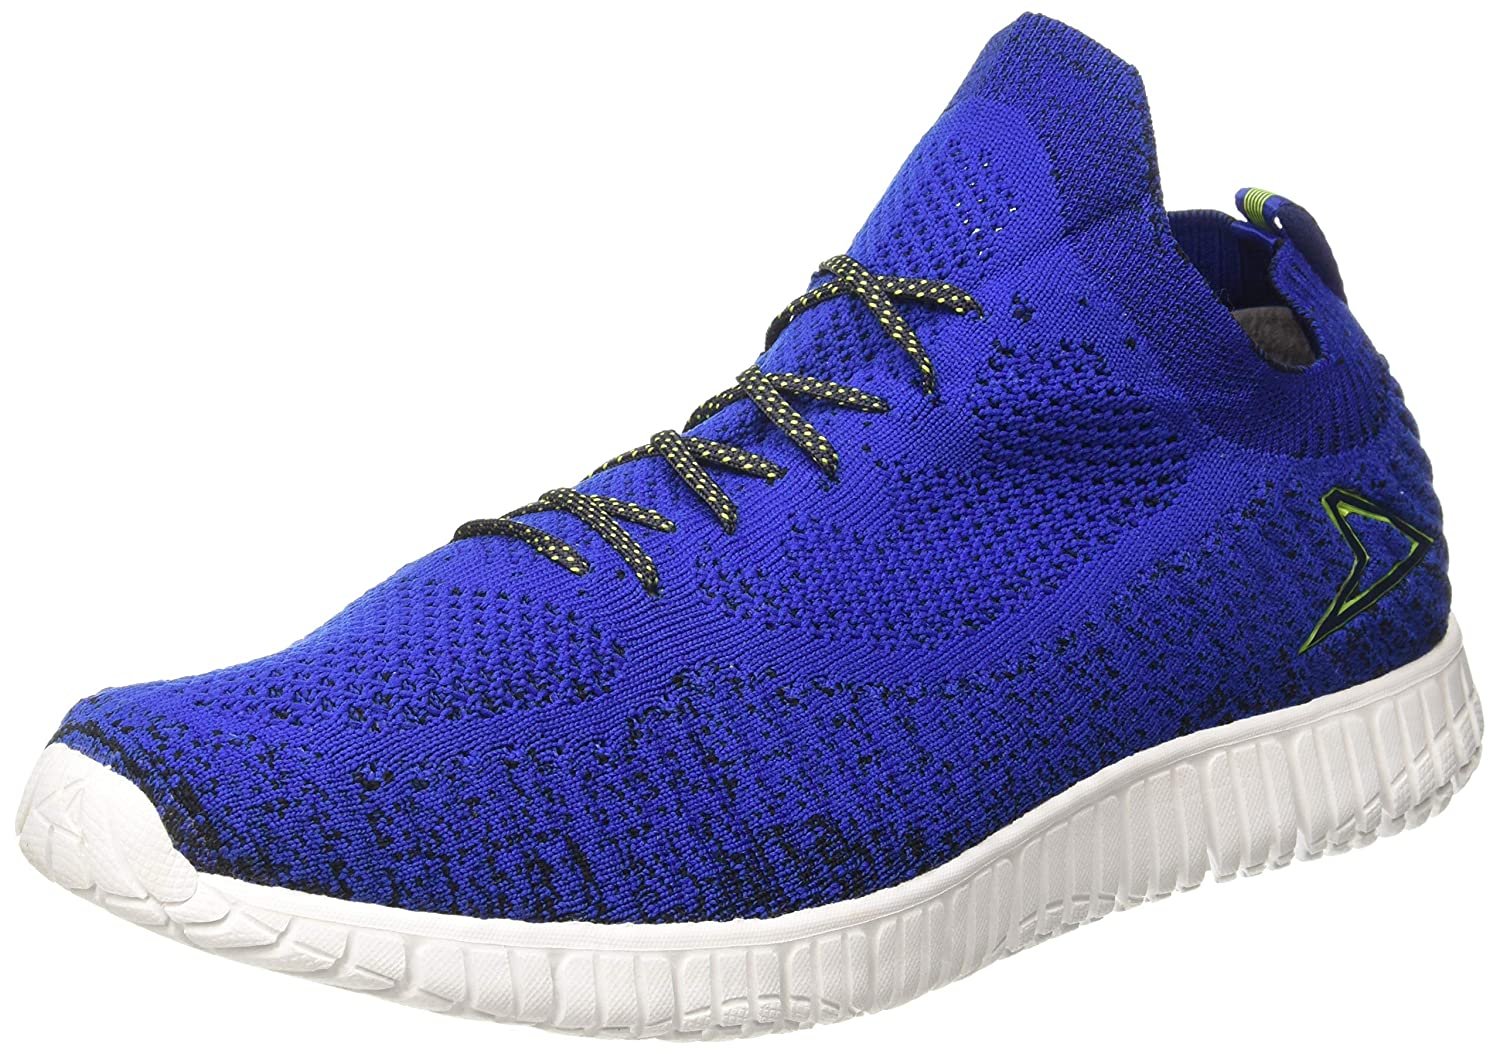 Buy Power Men's Engage Running Shoes at